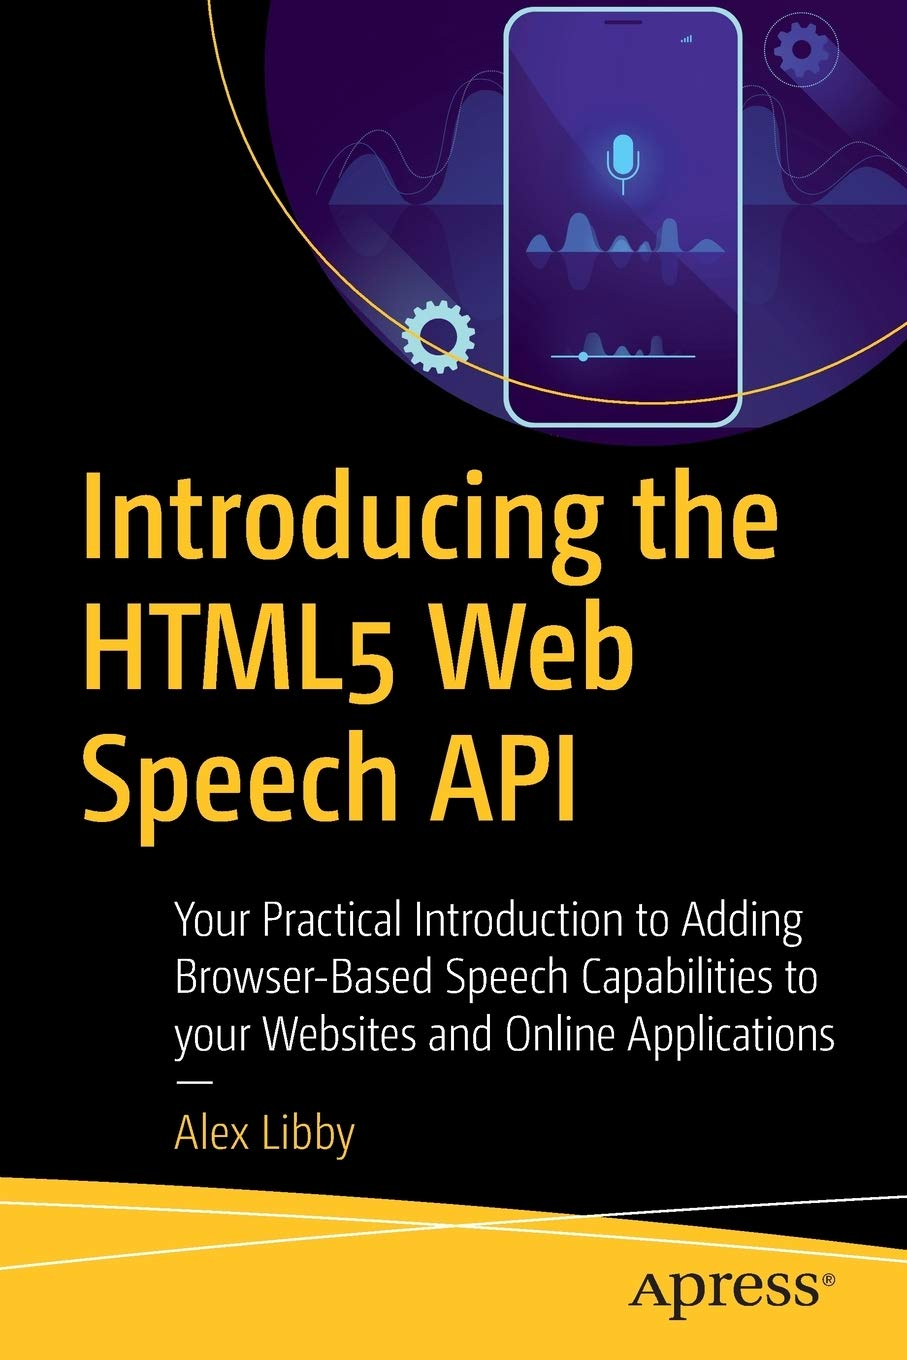 Introducing the HTML5 Web Speech API: Your Practical Introduction to Adding Browser-Based Speech Capabilities to your Websites and Online Applications